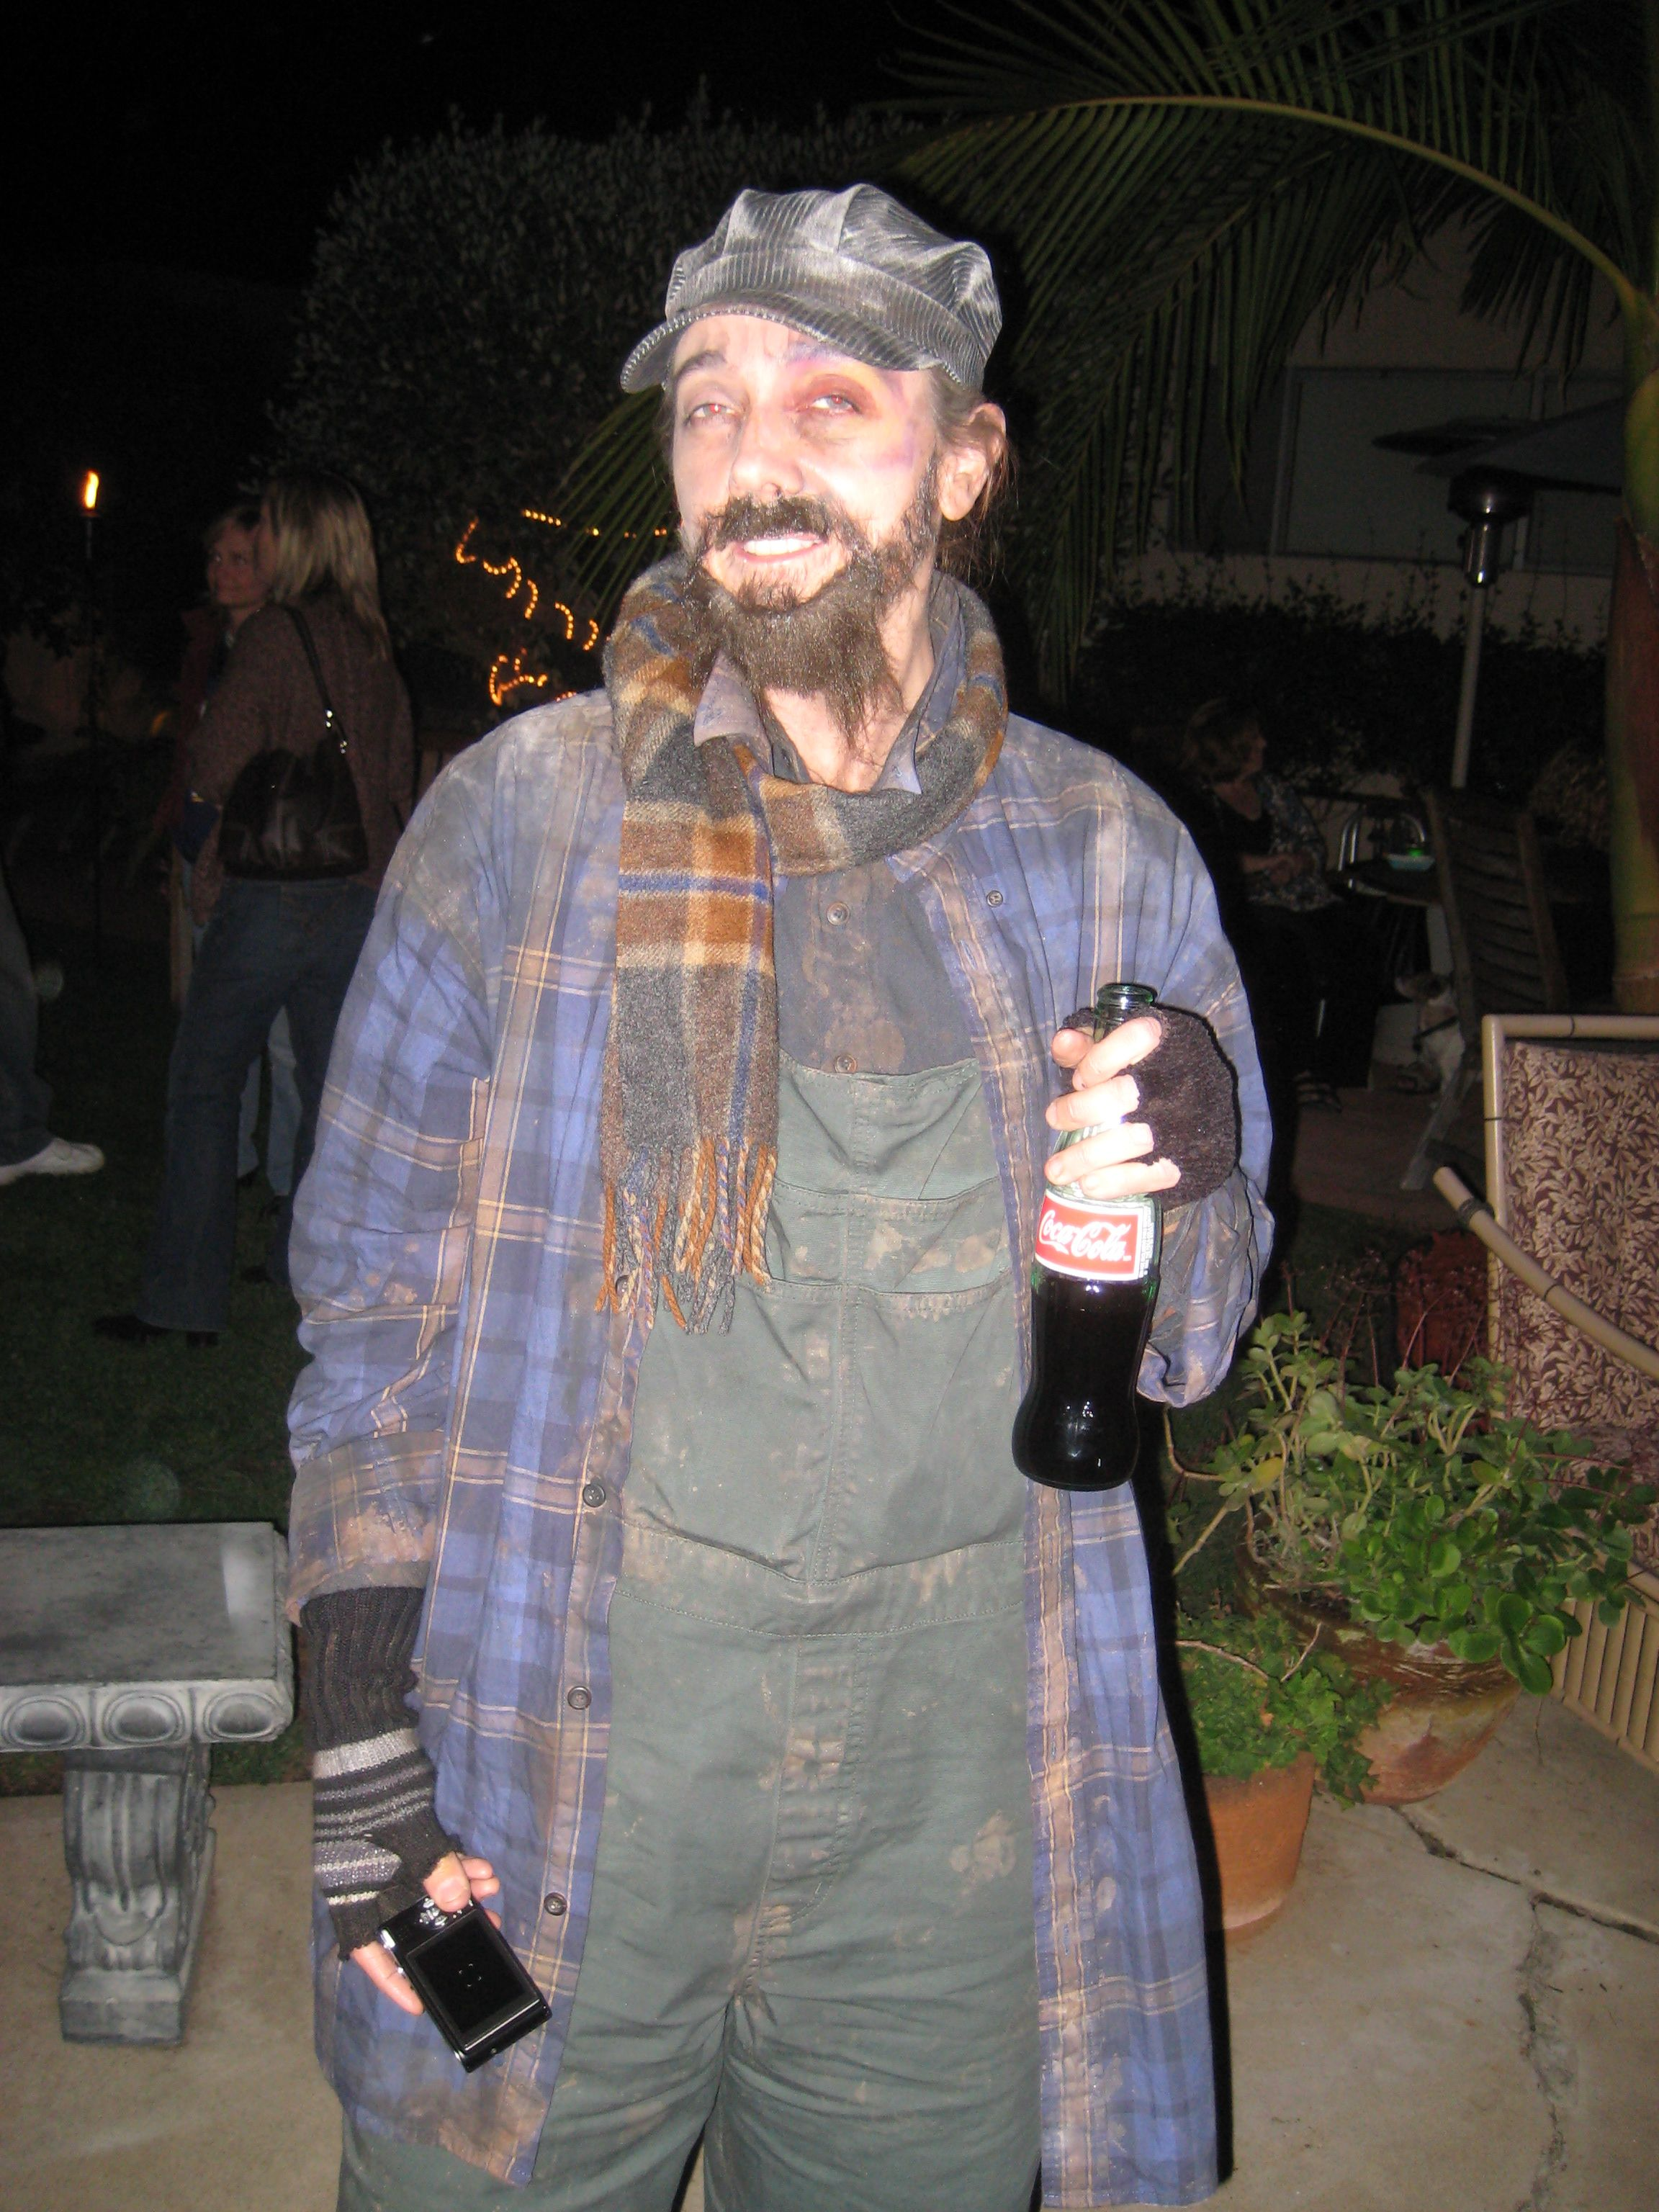 Back In The Day The Hobo Costume Was The Way To Go I Purchased Most Of The Stuff At The Thrift Store And Faux Finishe Hobo Costume Costume Craze Hobo Dress